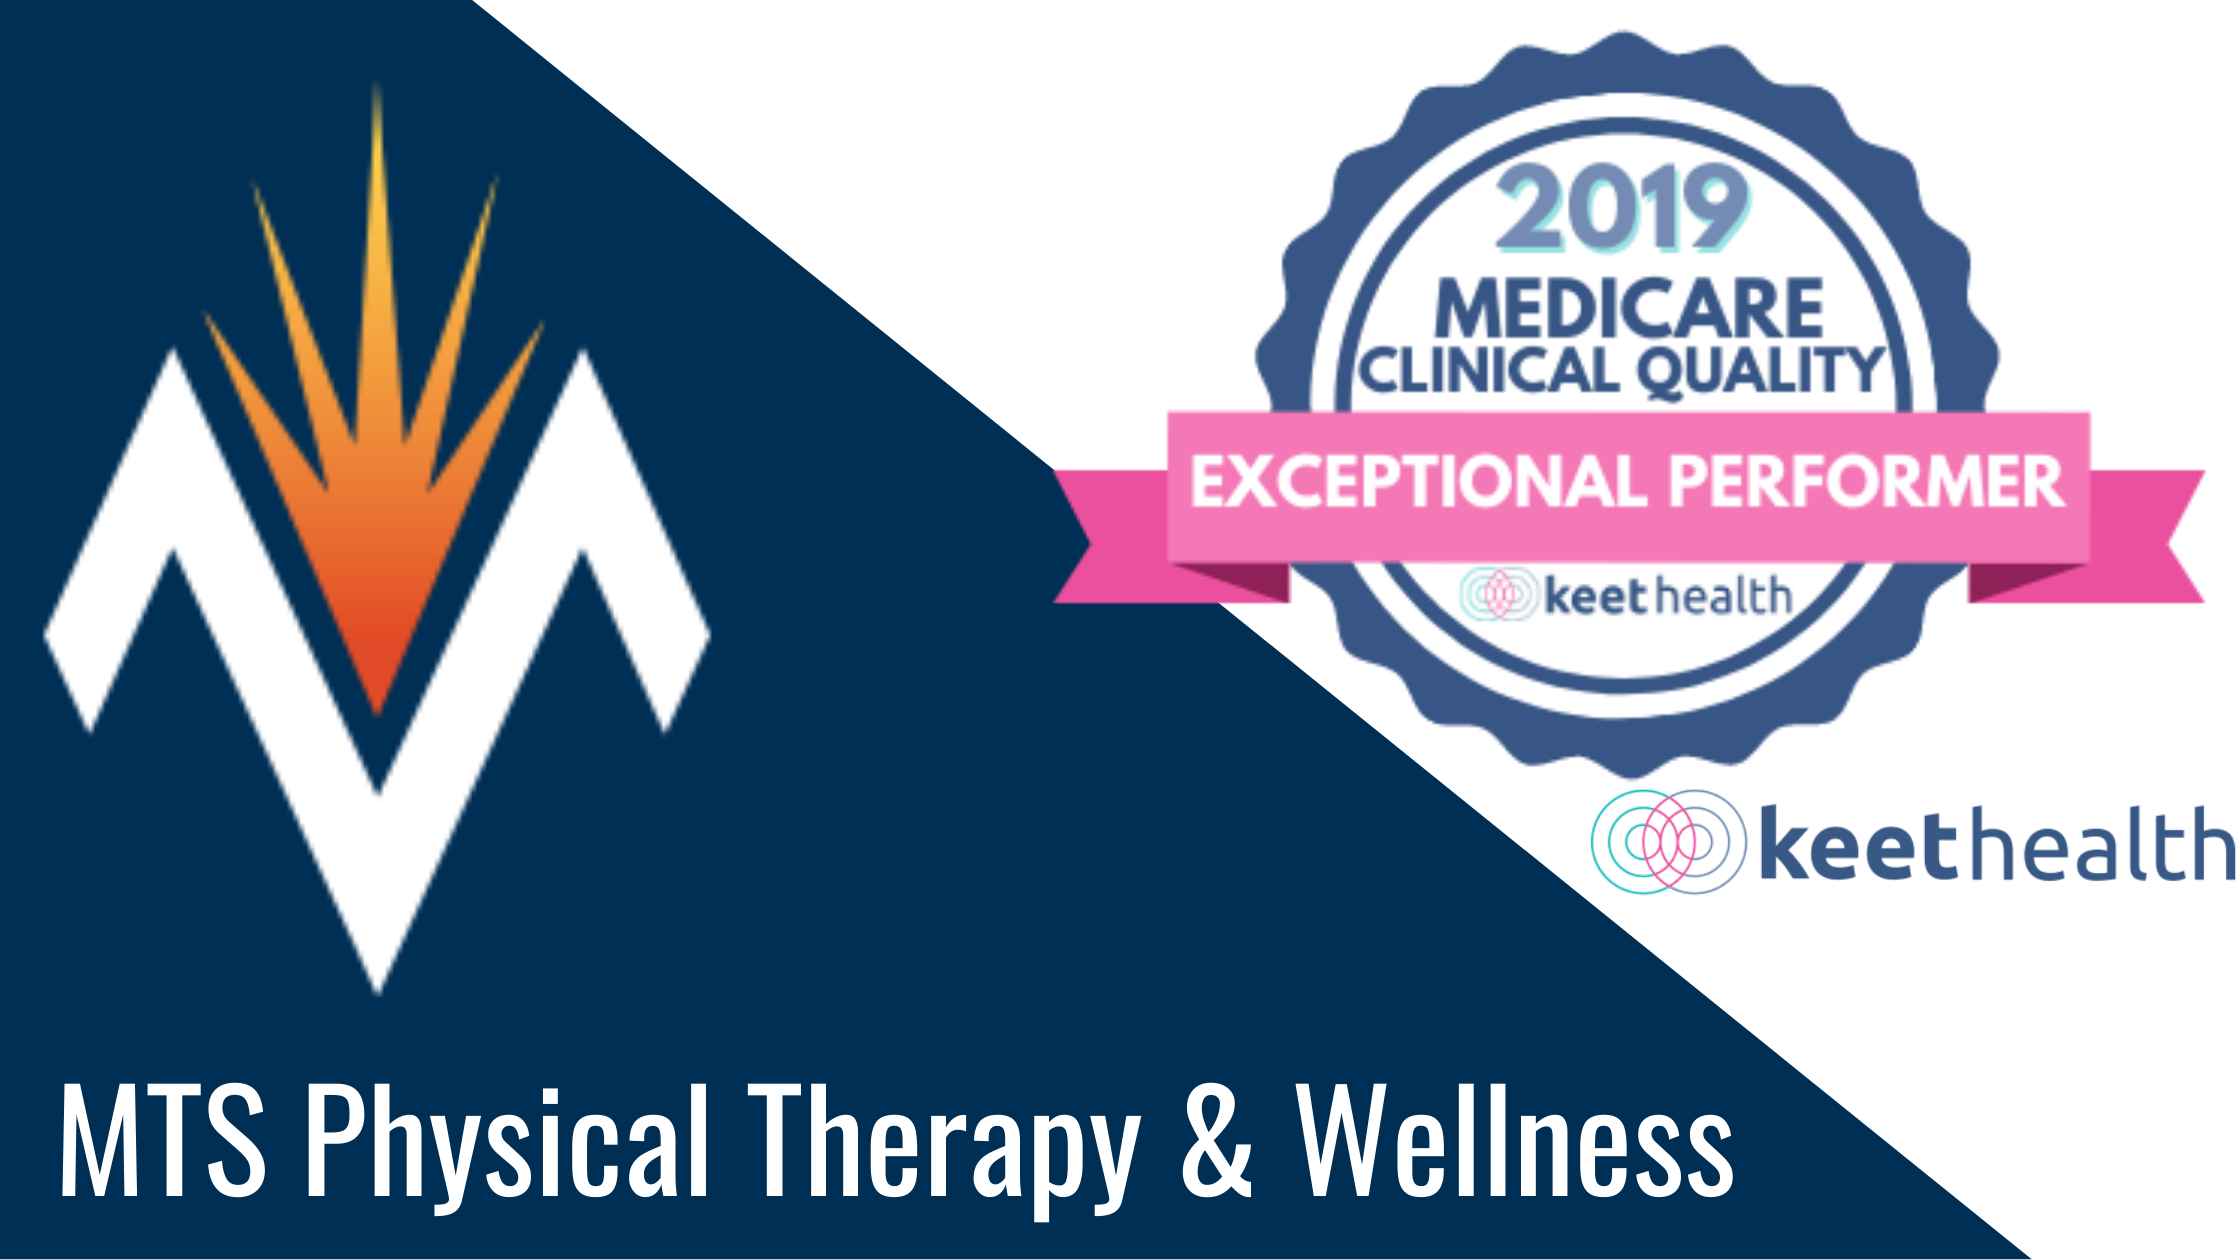 MTS Therapists Named Exceptional Performers